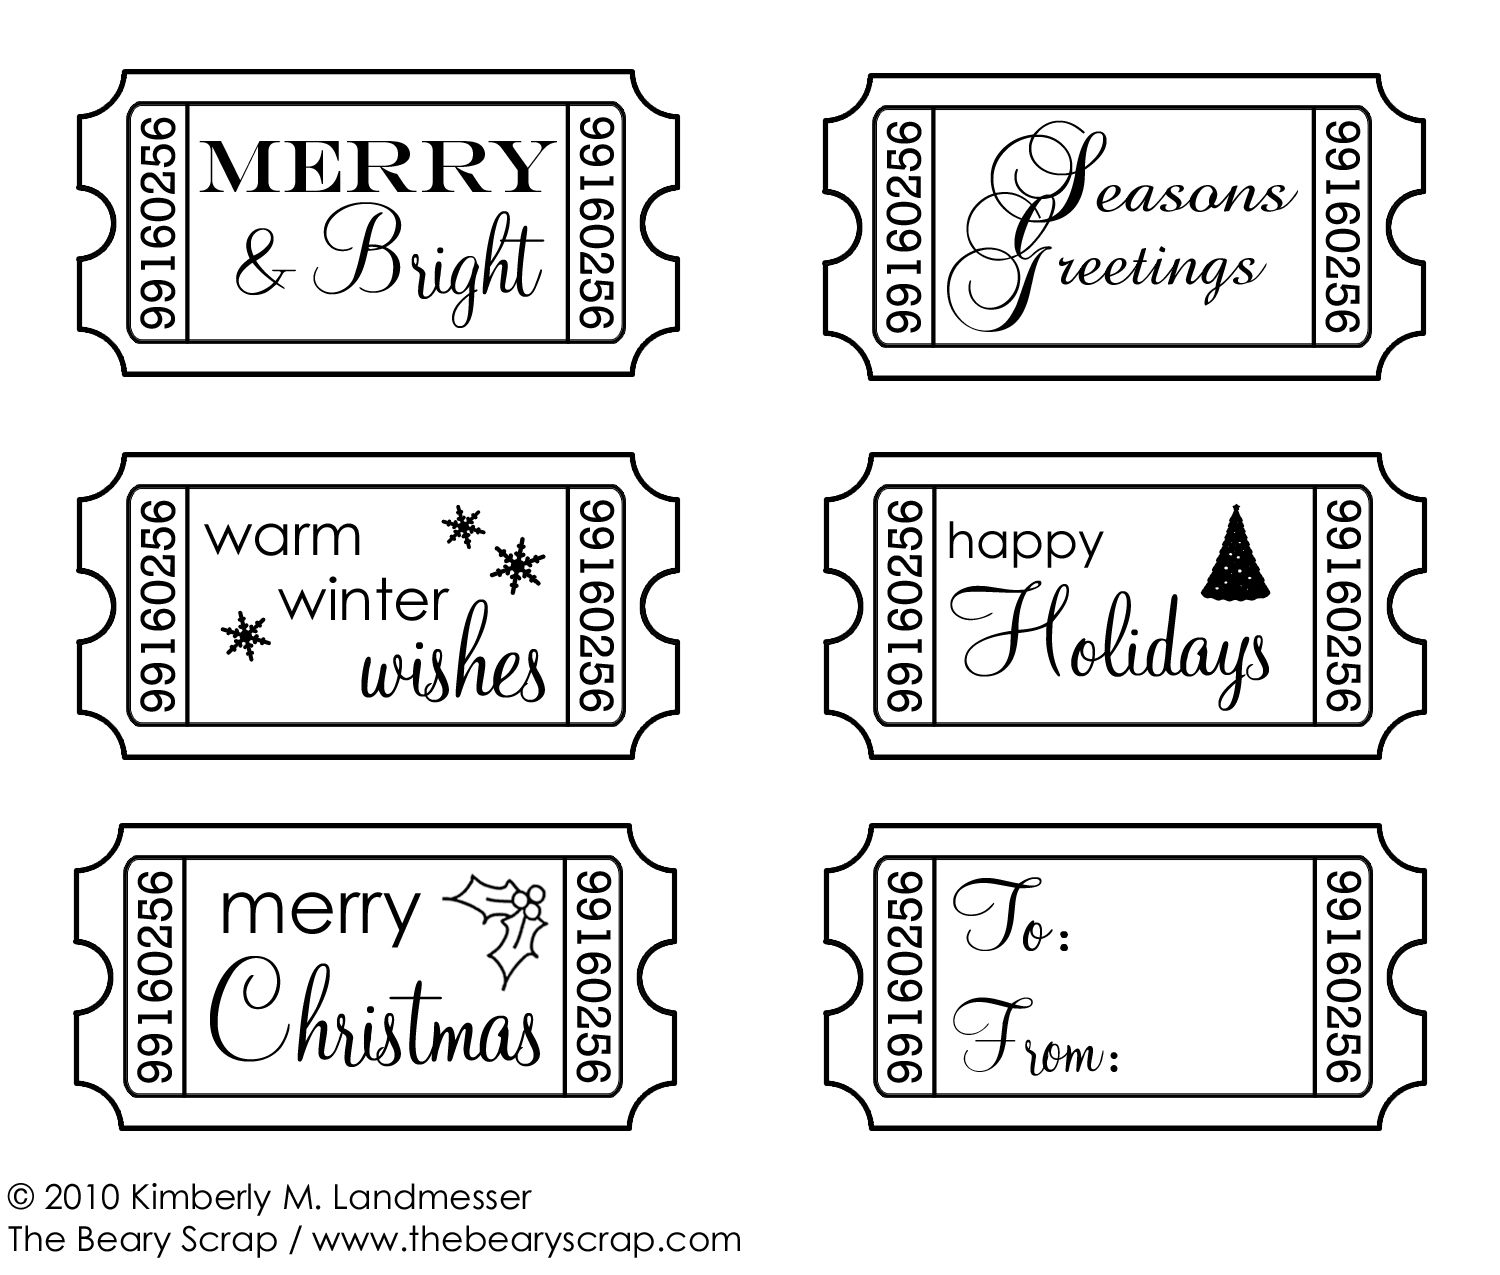 the color of water quotes with page numbers - 30 free christmas printables